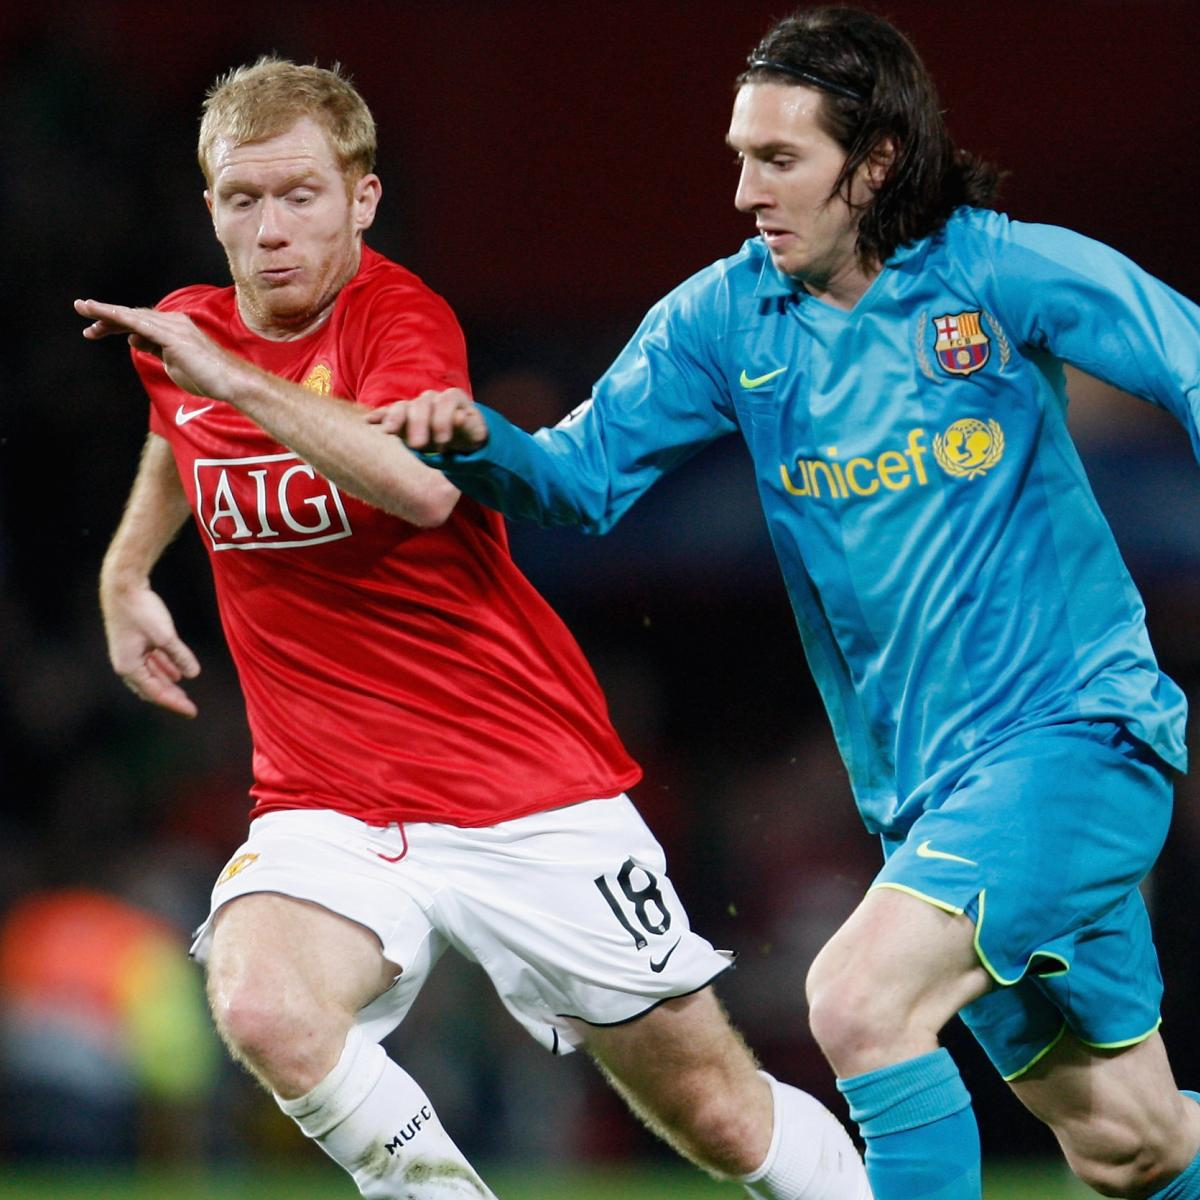 Lionel Messi A Look At The Barcelona Star S Sensational: Paul Scholes Describes Barcelona Star Lionel Messi As 'The